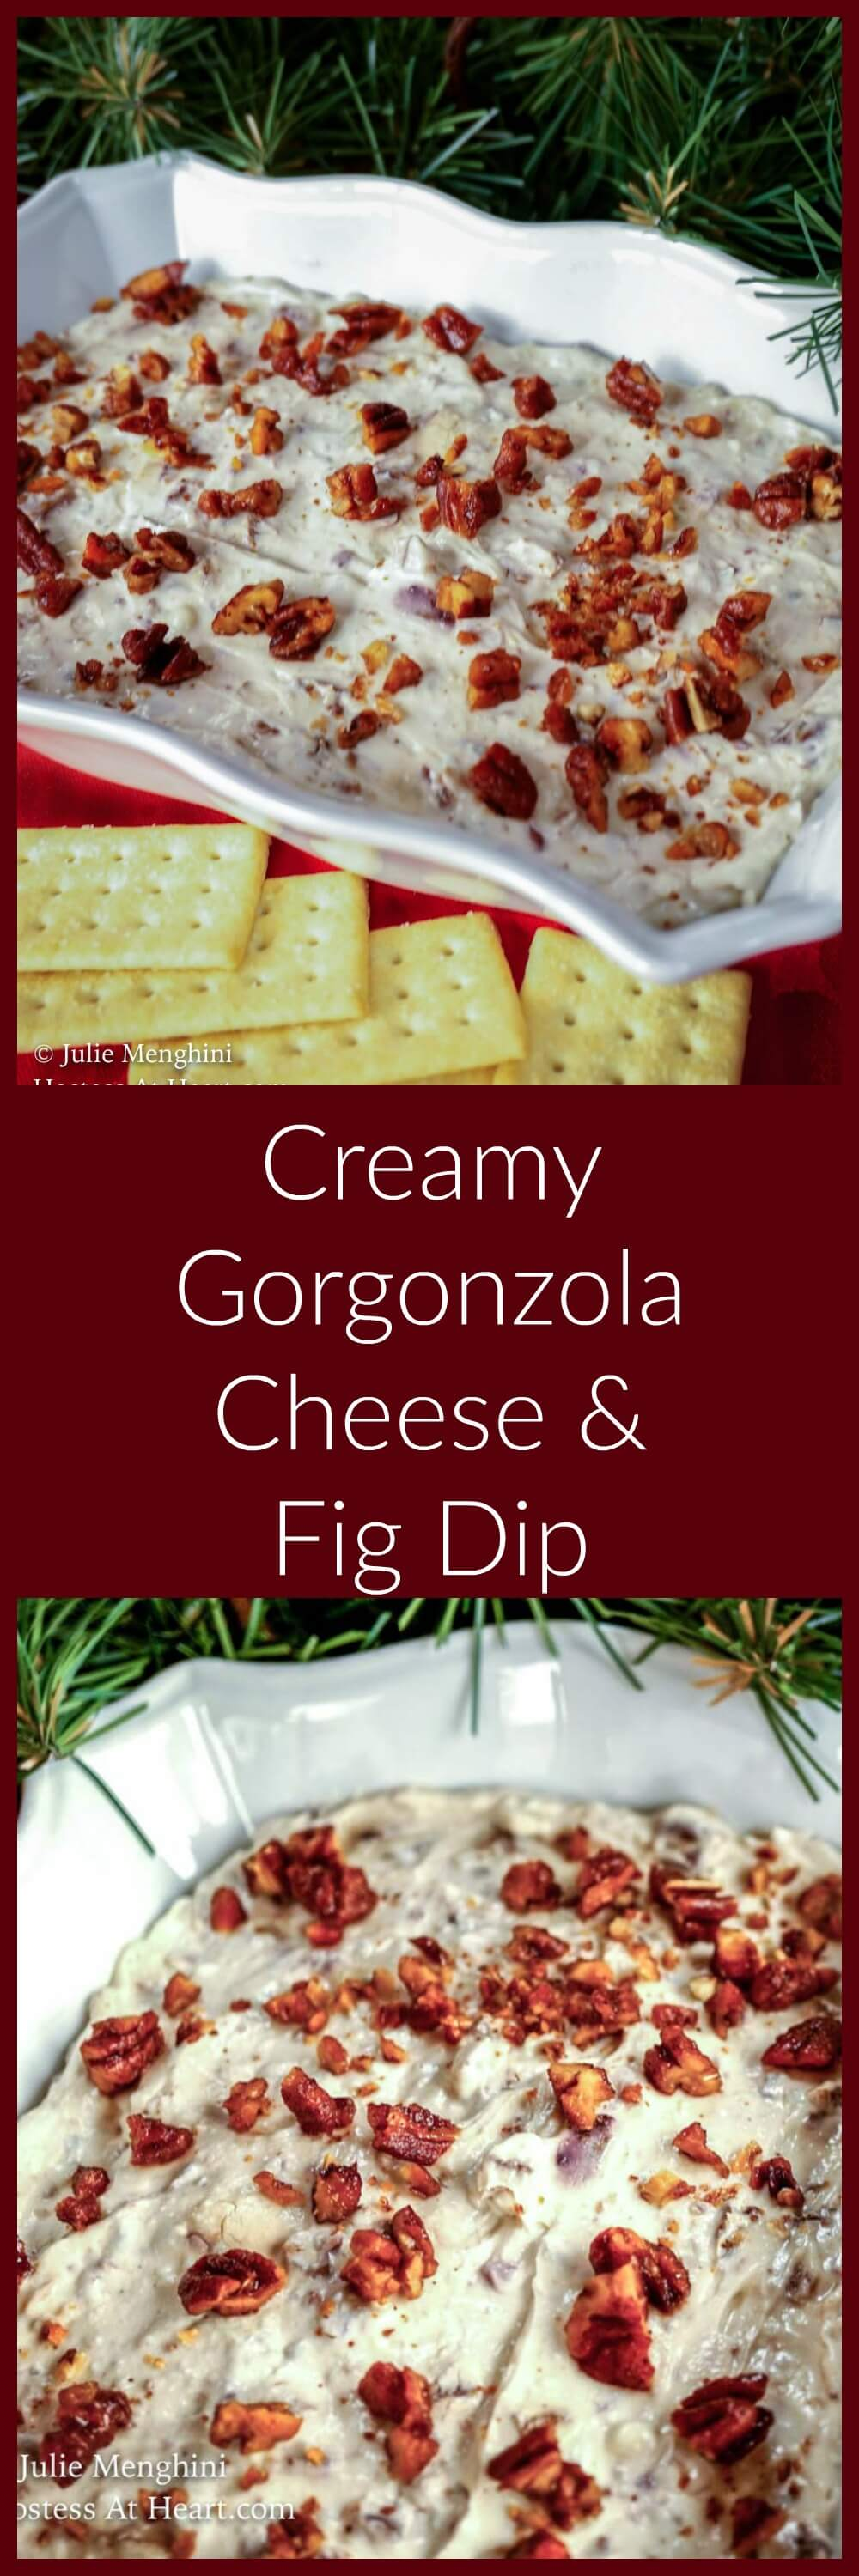 Creamy Gorgonzola Cheese and Fig Dip is smooth, sweet, and a little spicy. It is quick and easy to make and will be a hit at any gathering.